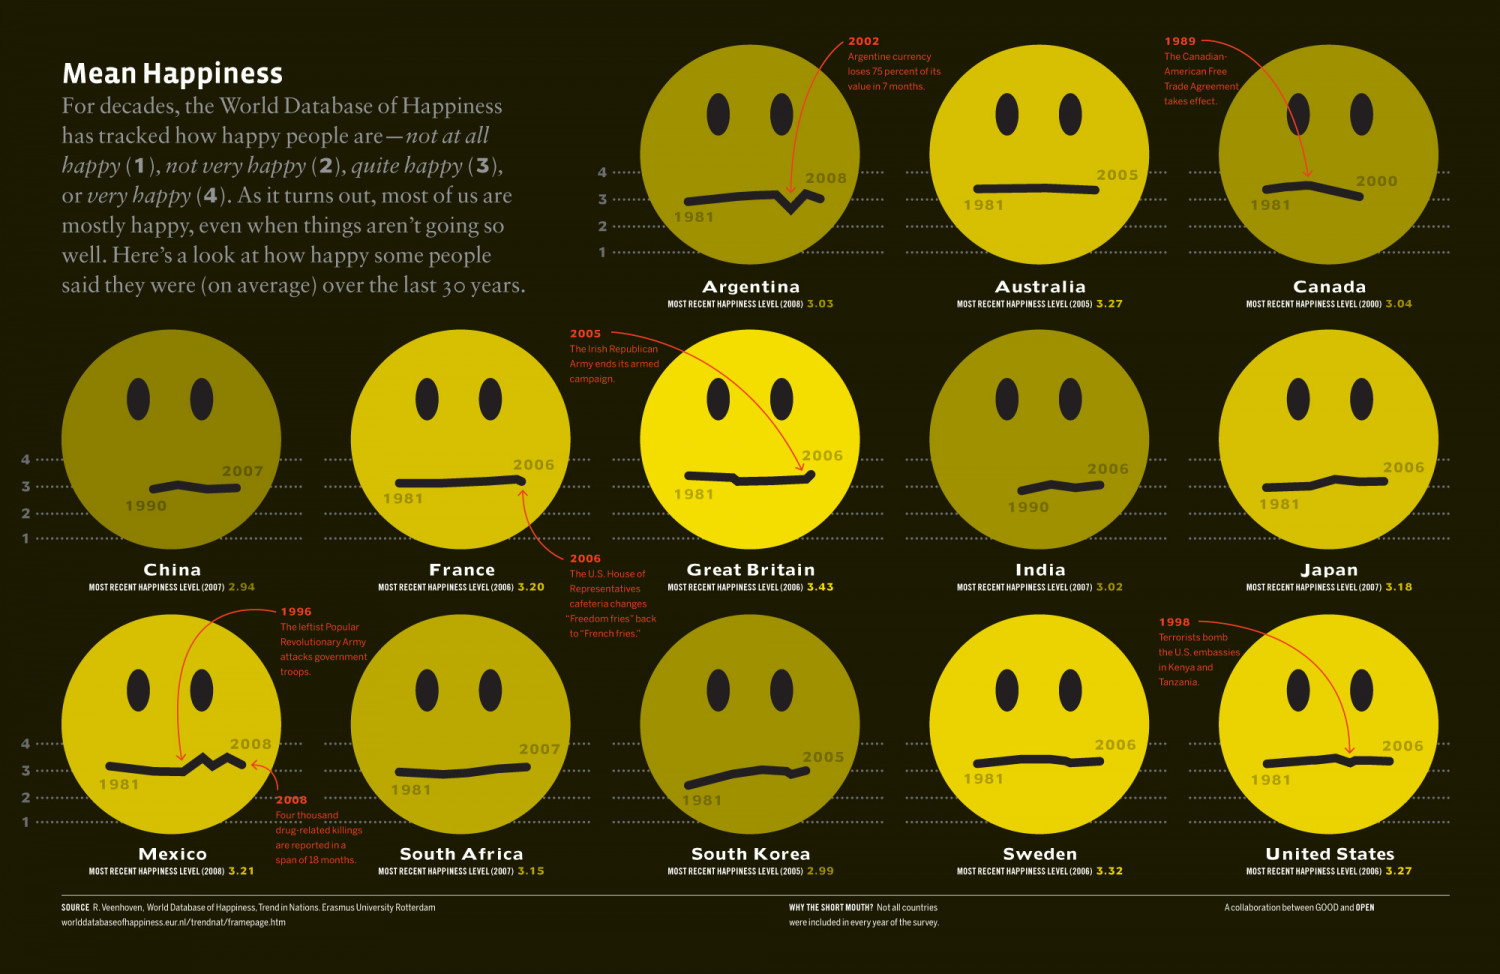 Mean Hapiness Infographic